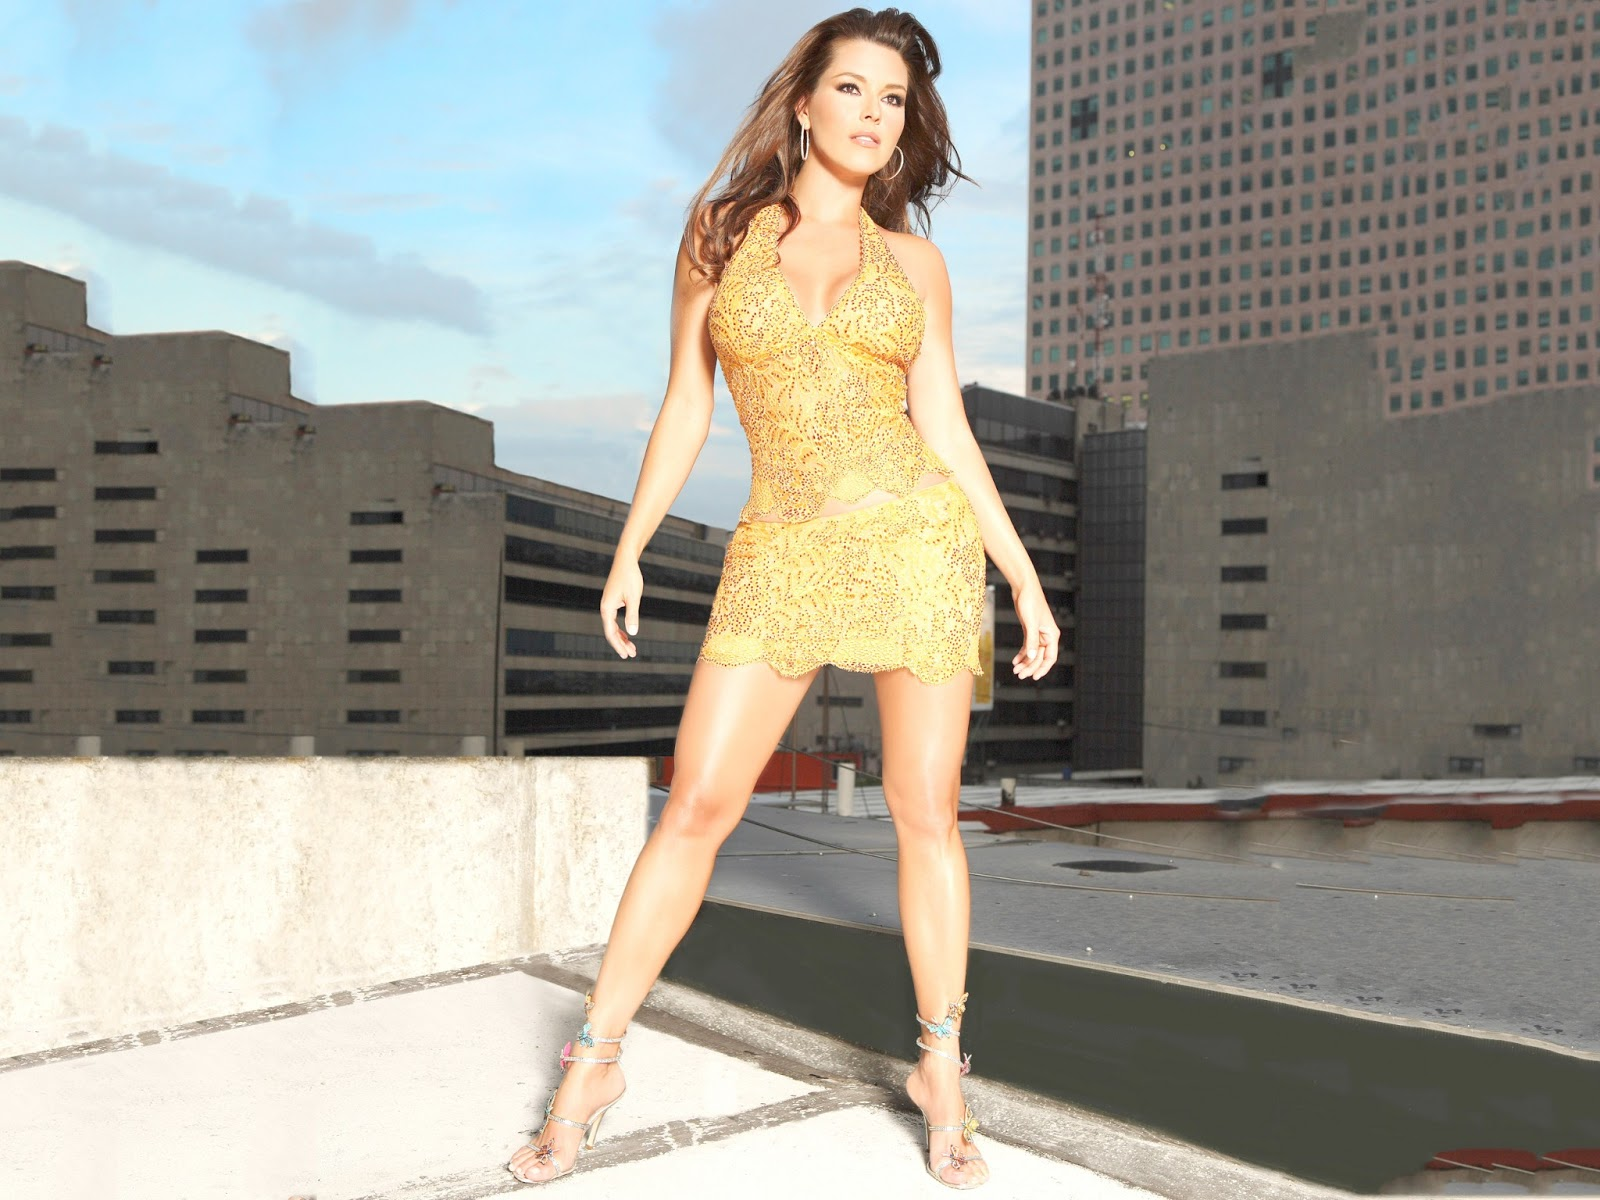 Alicia Machado Hot Amp Sexy Wallpaper Desktop Wallpapers